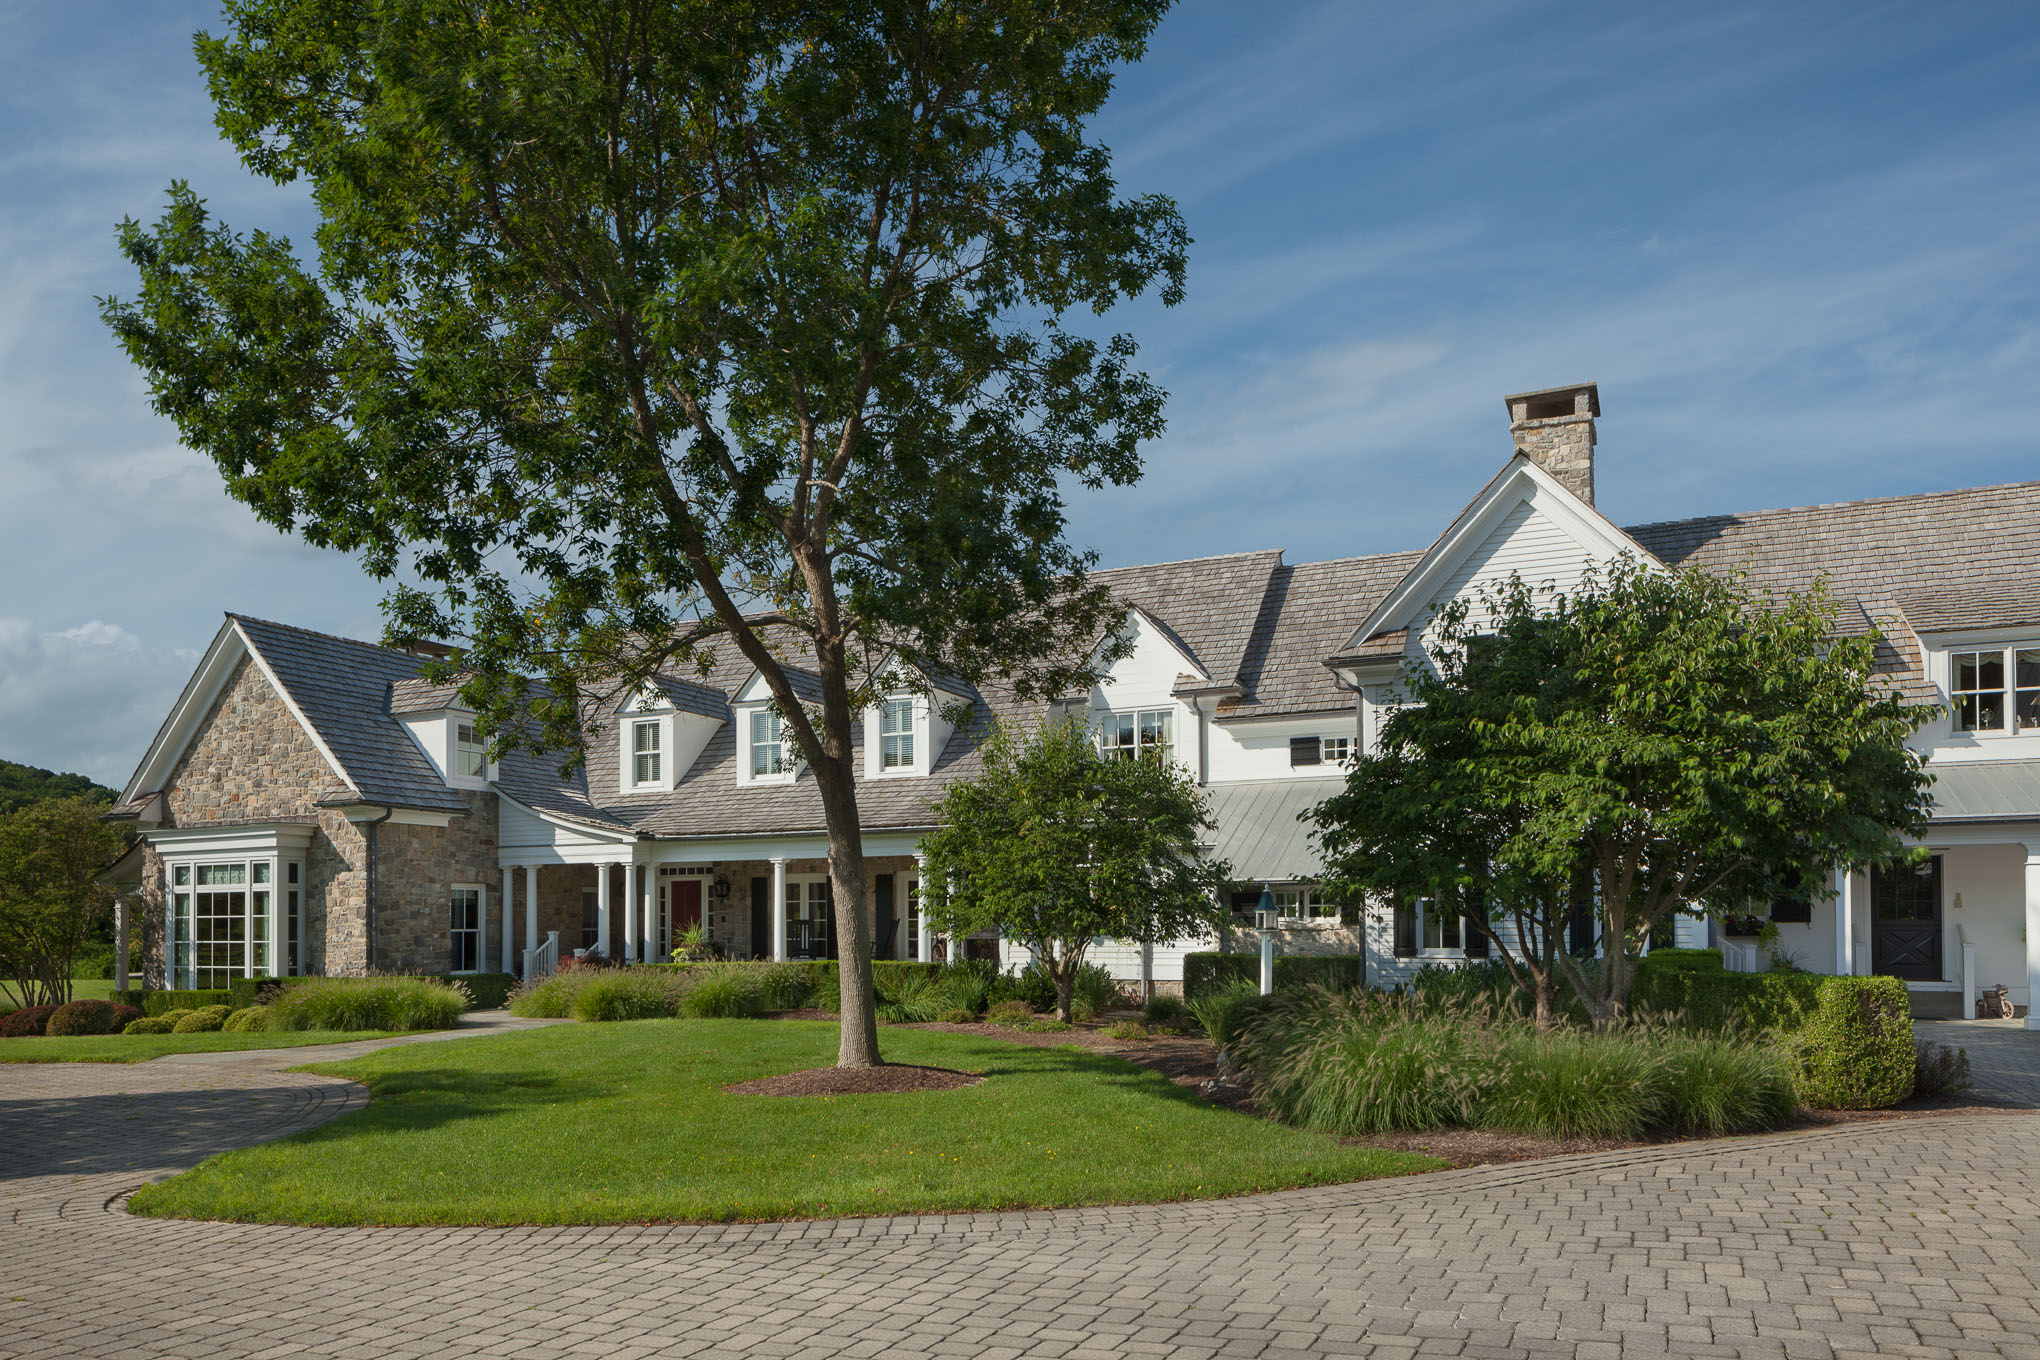 Private Residence, Mendham, New Jersey